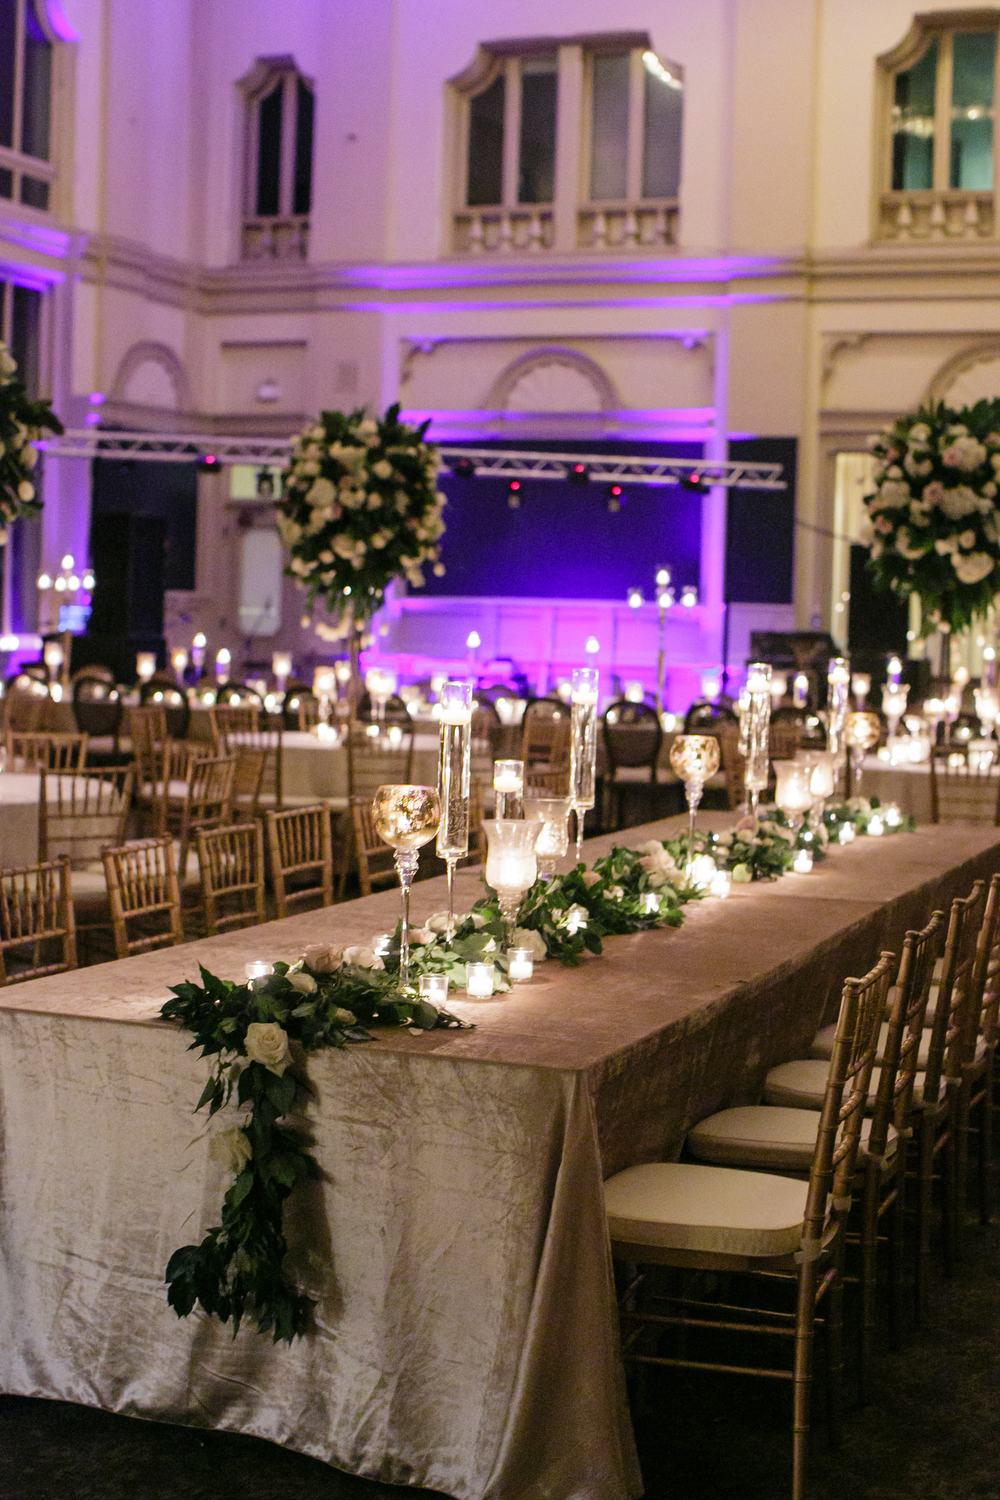 seated wedding reception tables with long greenery and white floral runners with candles and architectural details